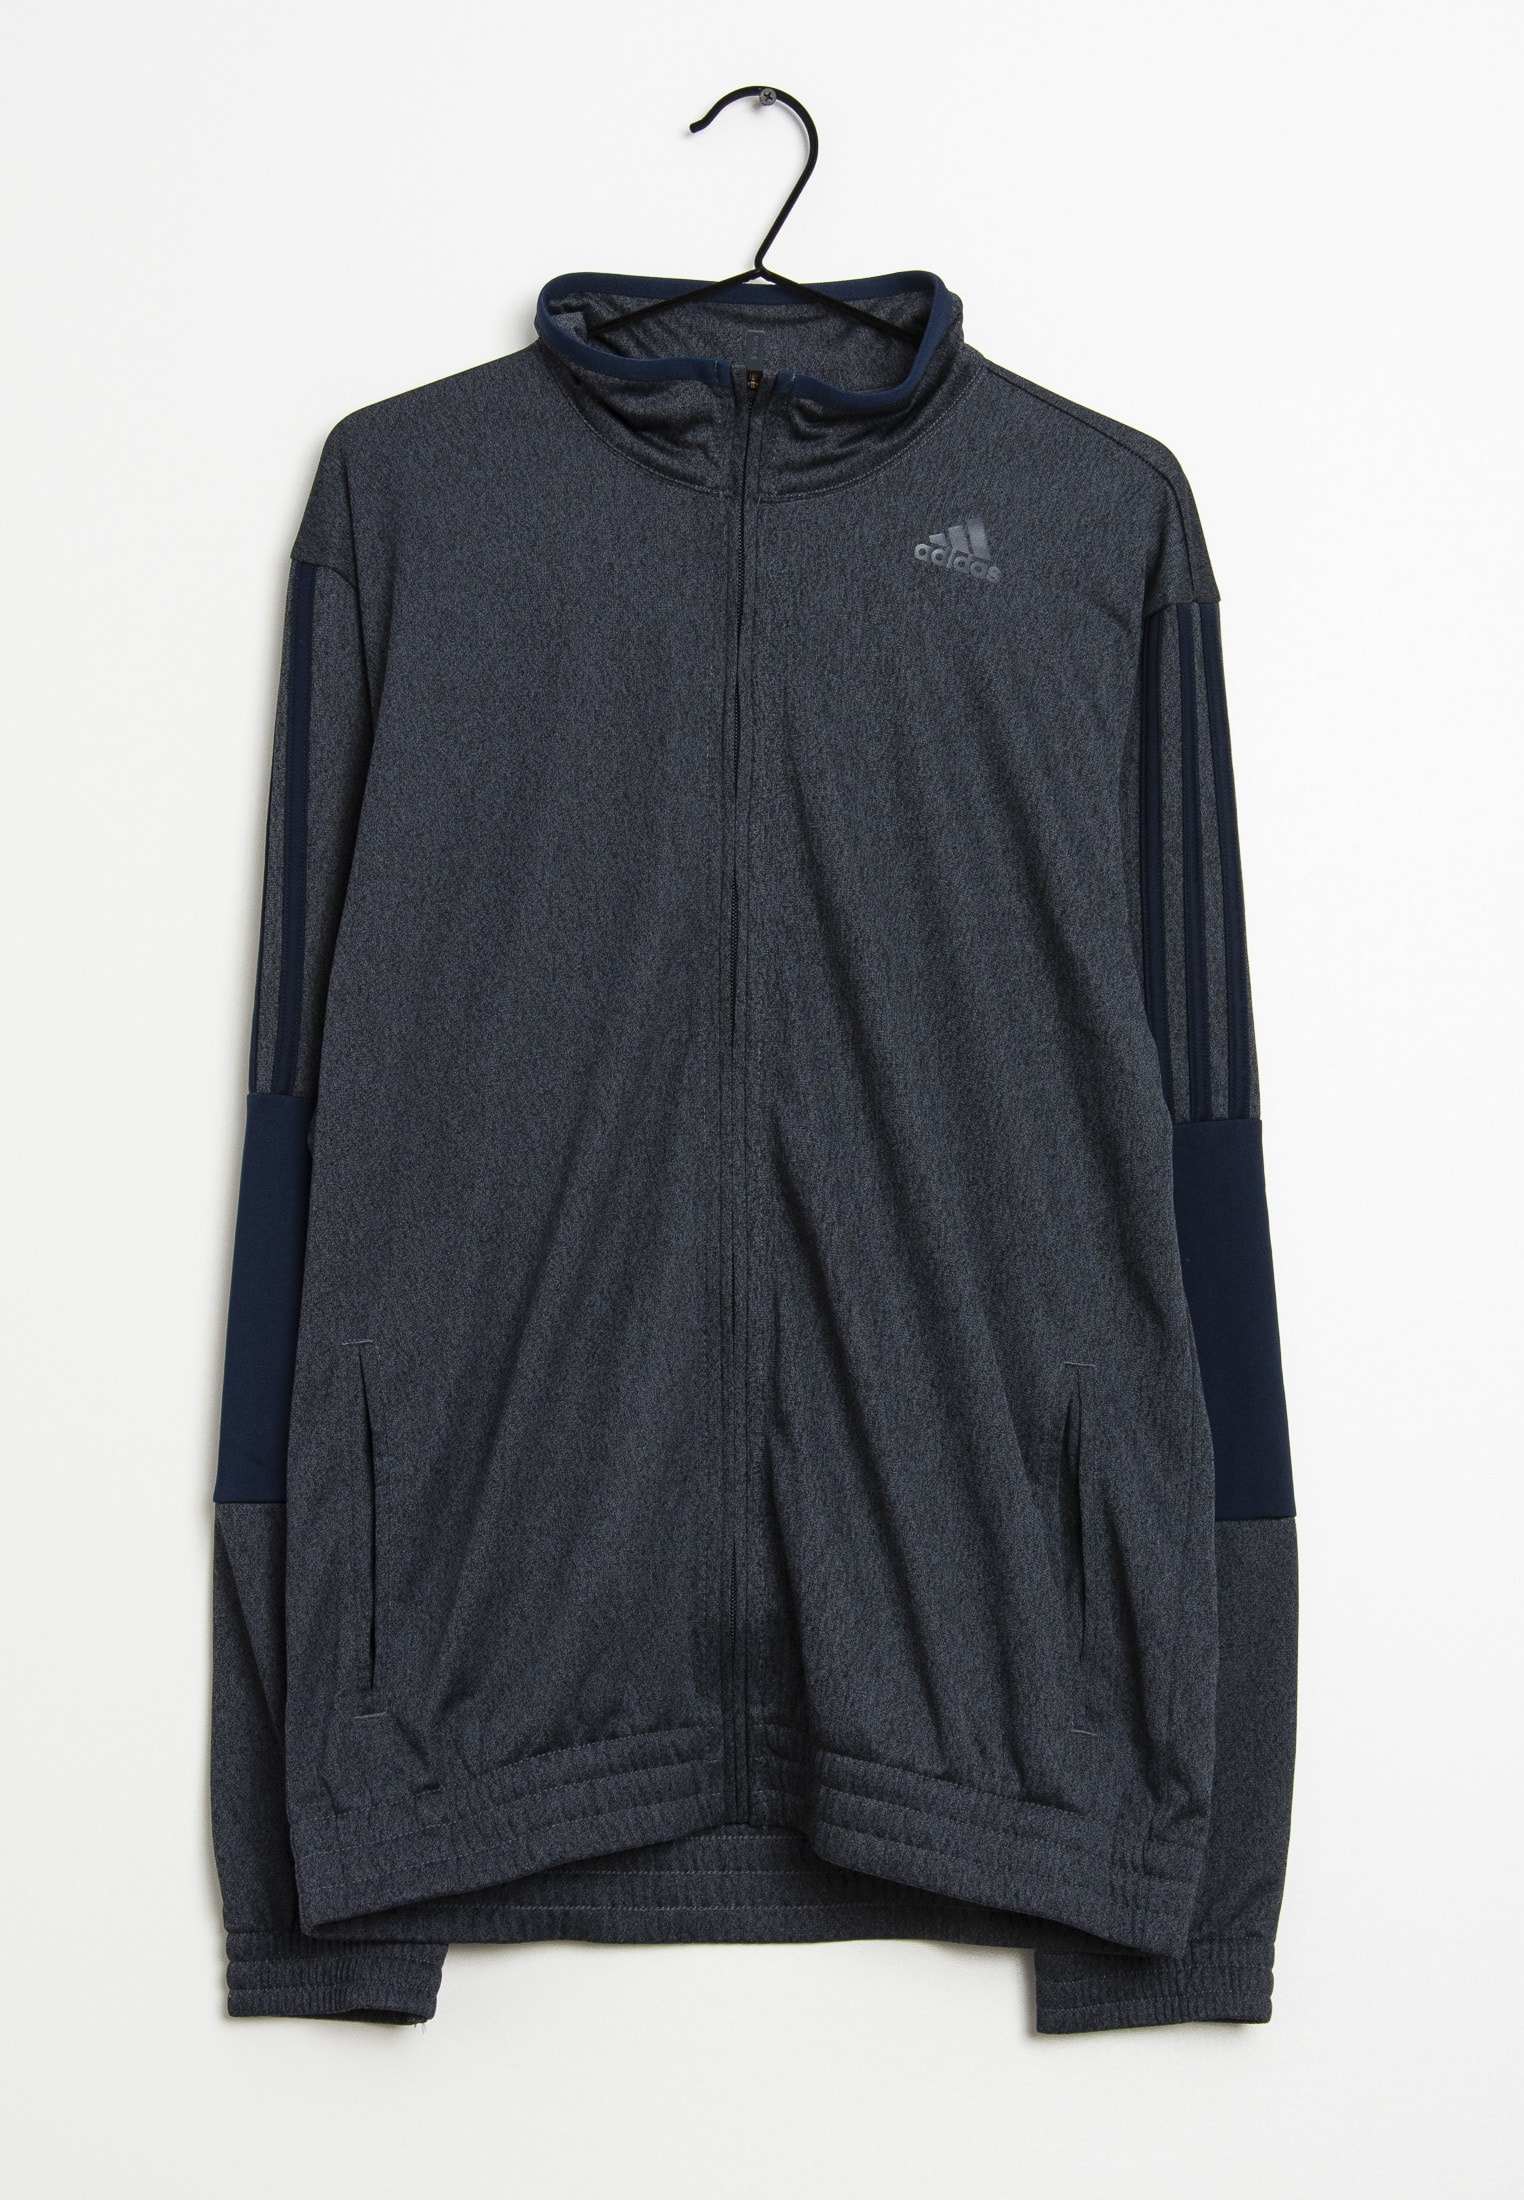 adidas Originals Sweat / Fleece Blau Gr.38